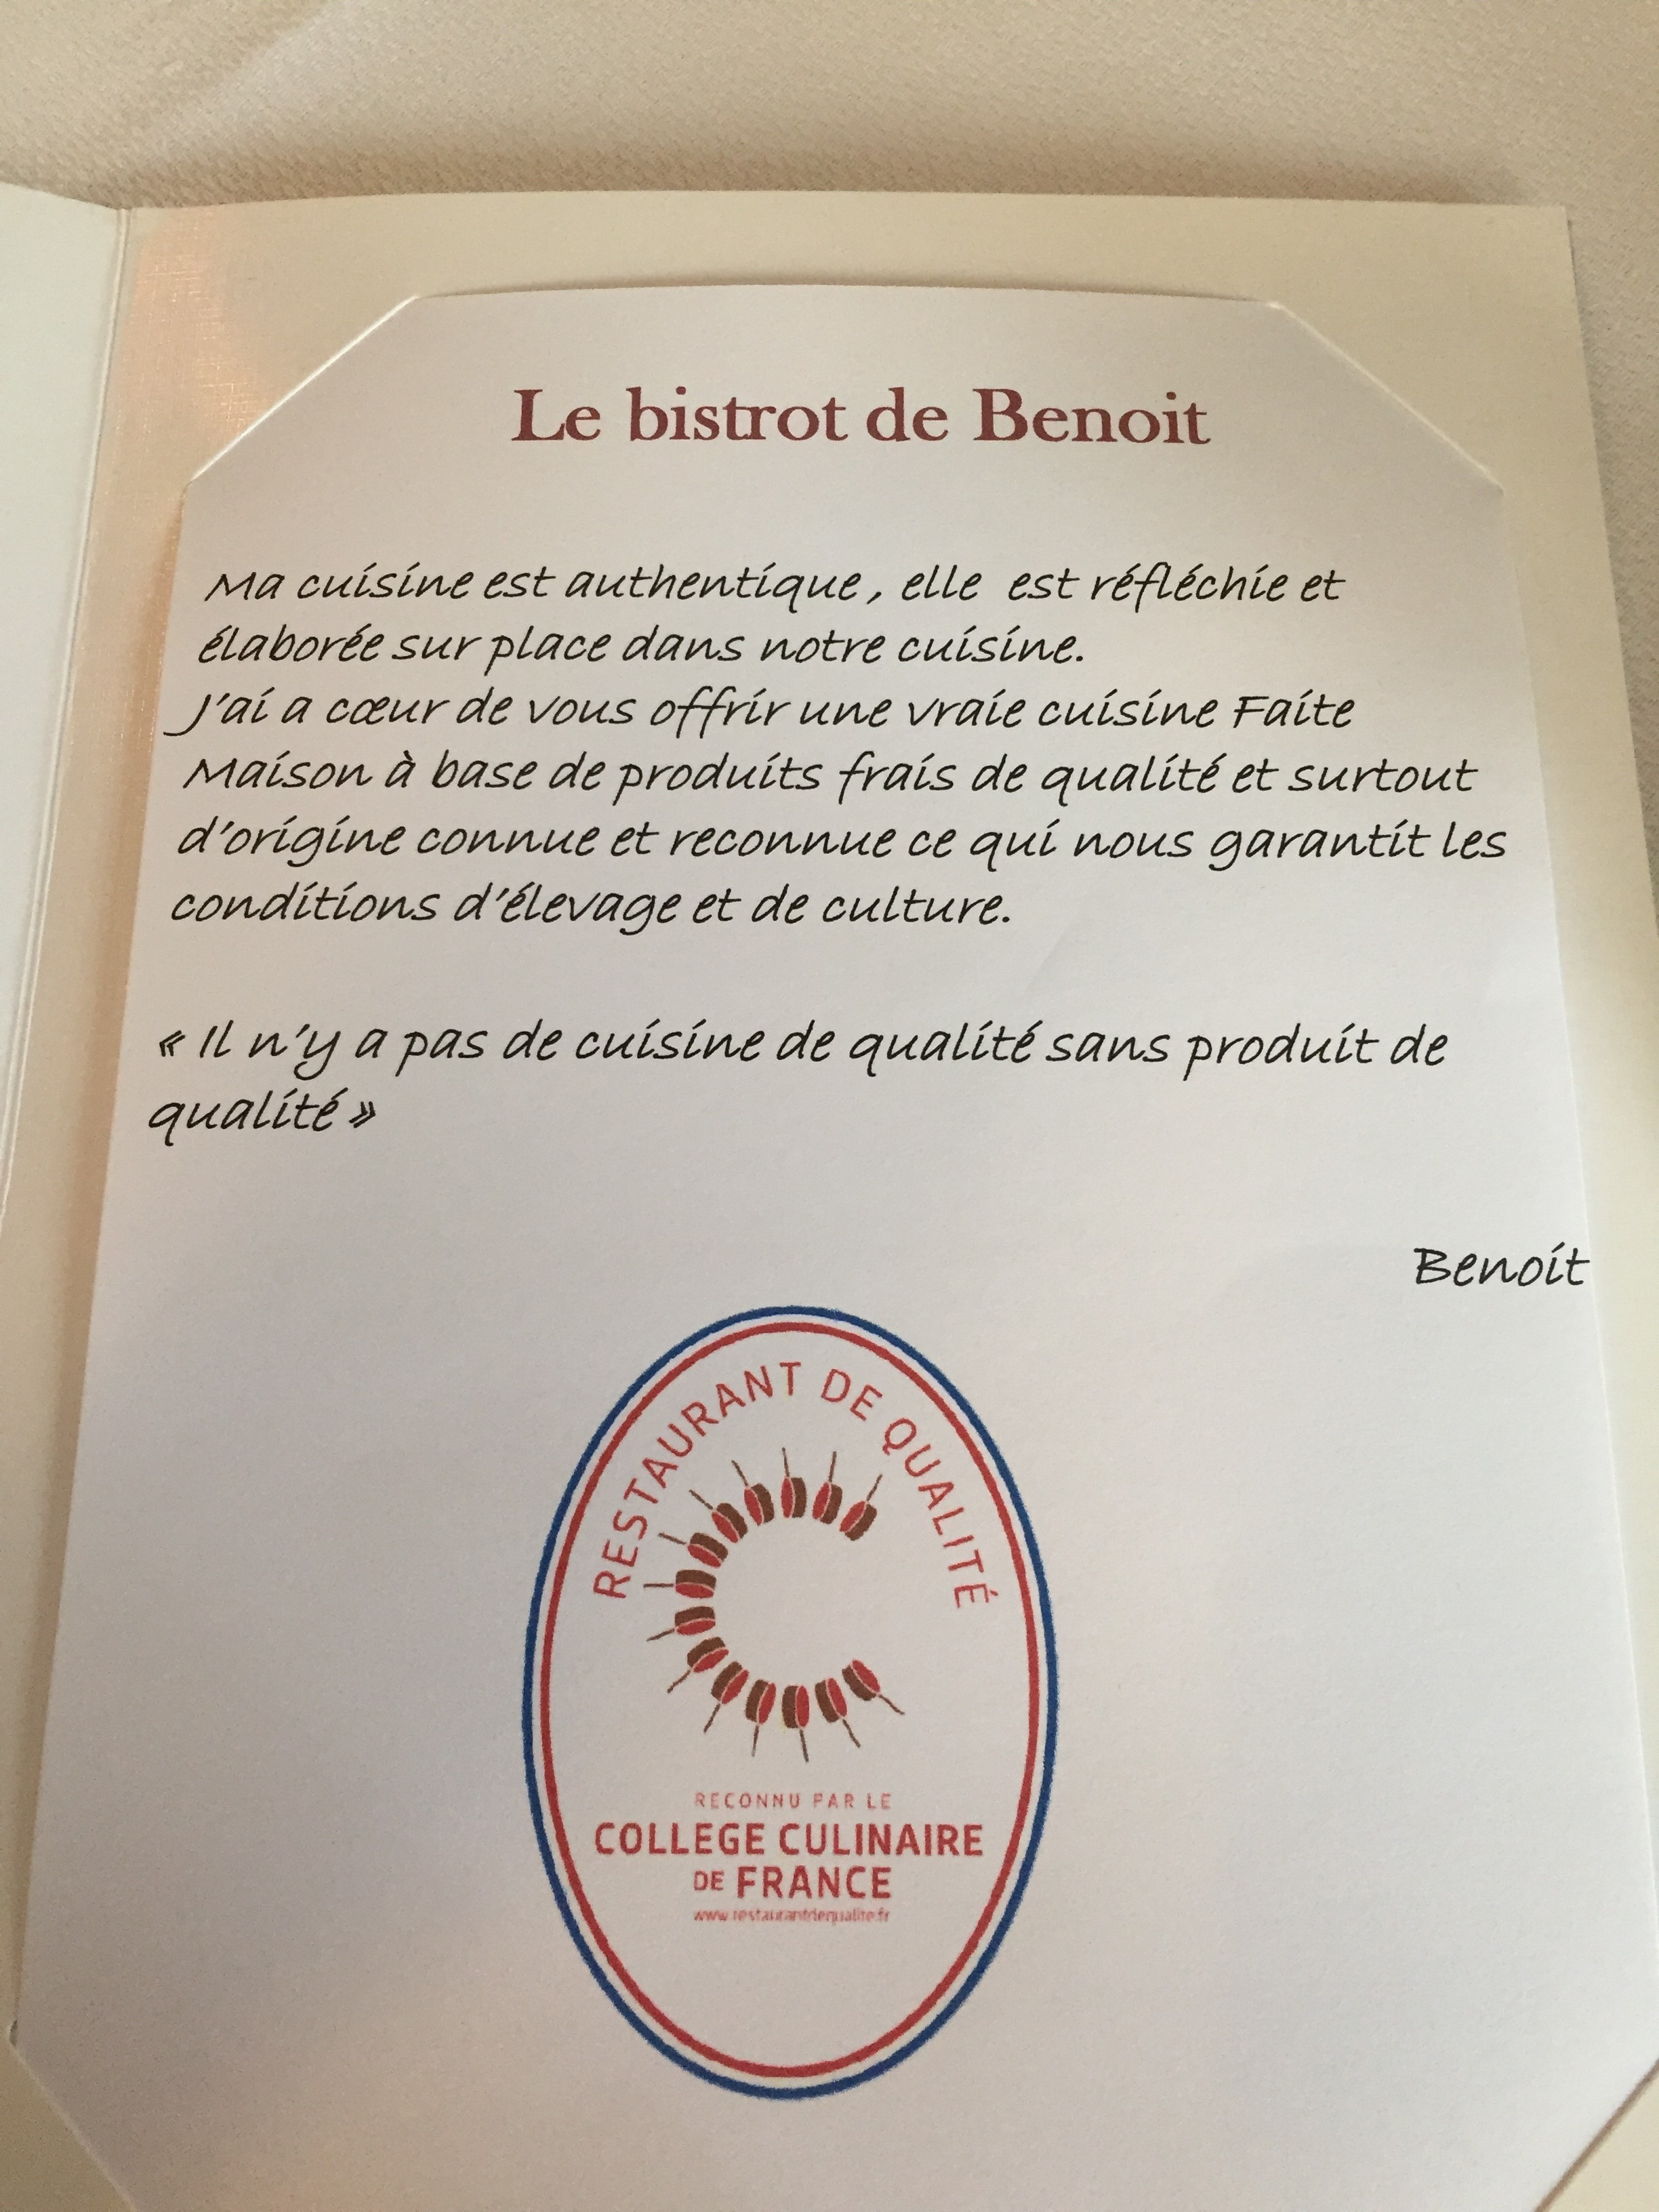 Adhérent LE BISTROT DE BENOIT - photo #7527